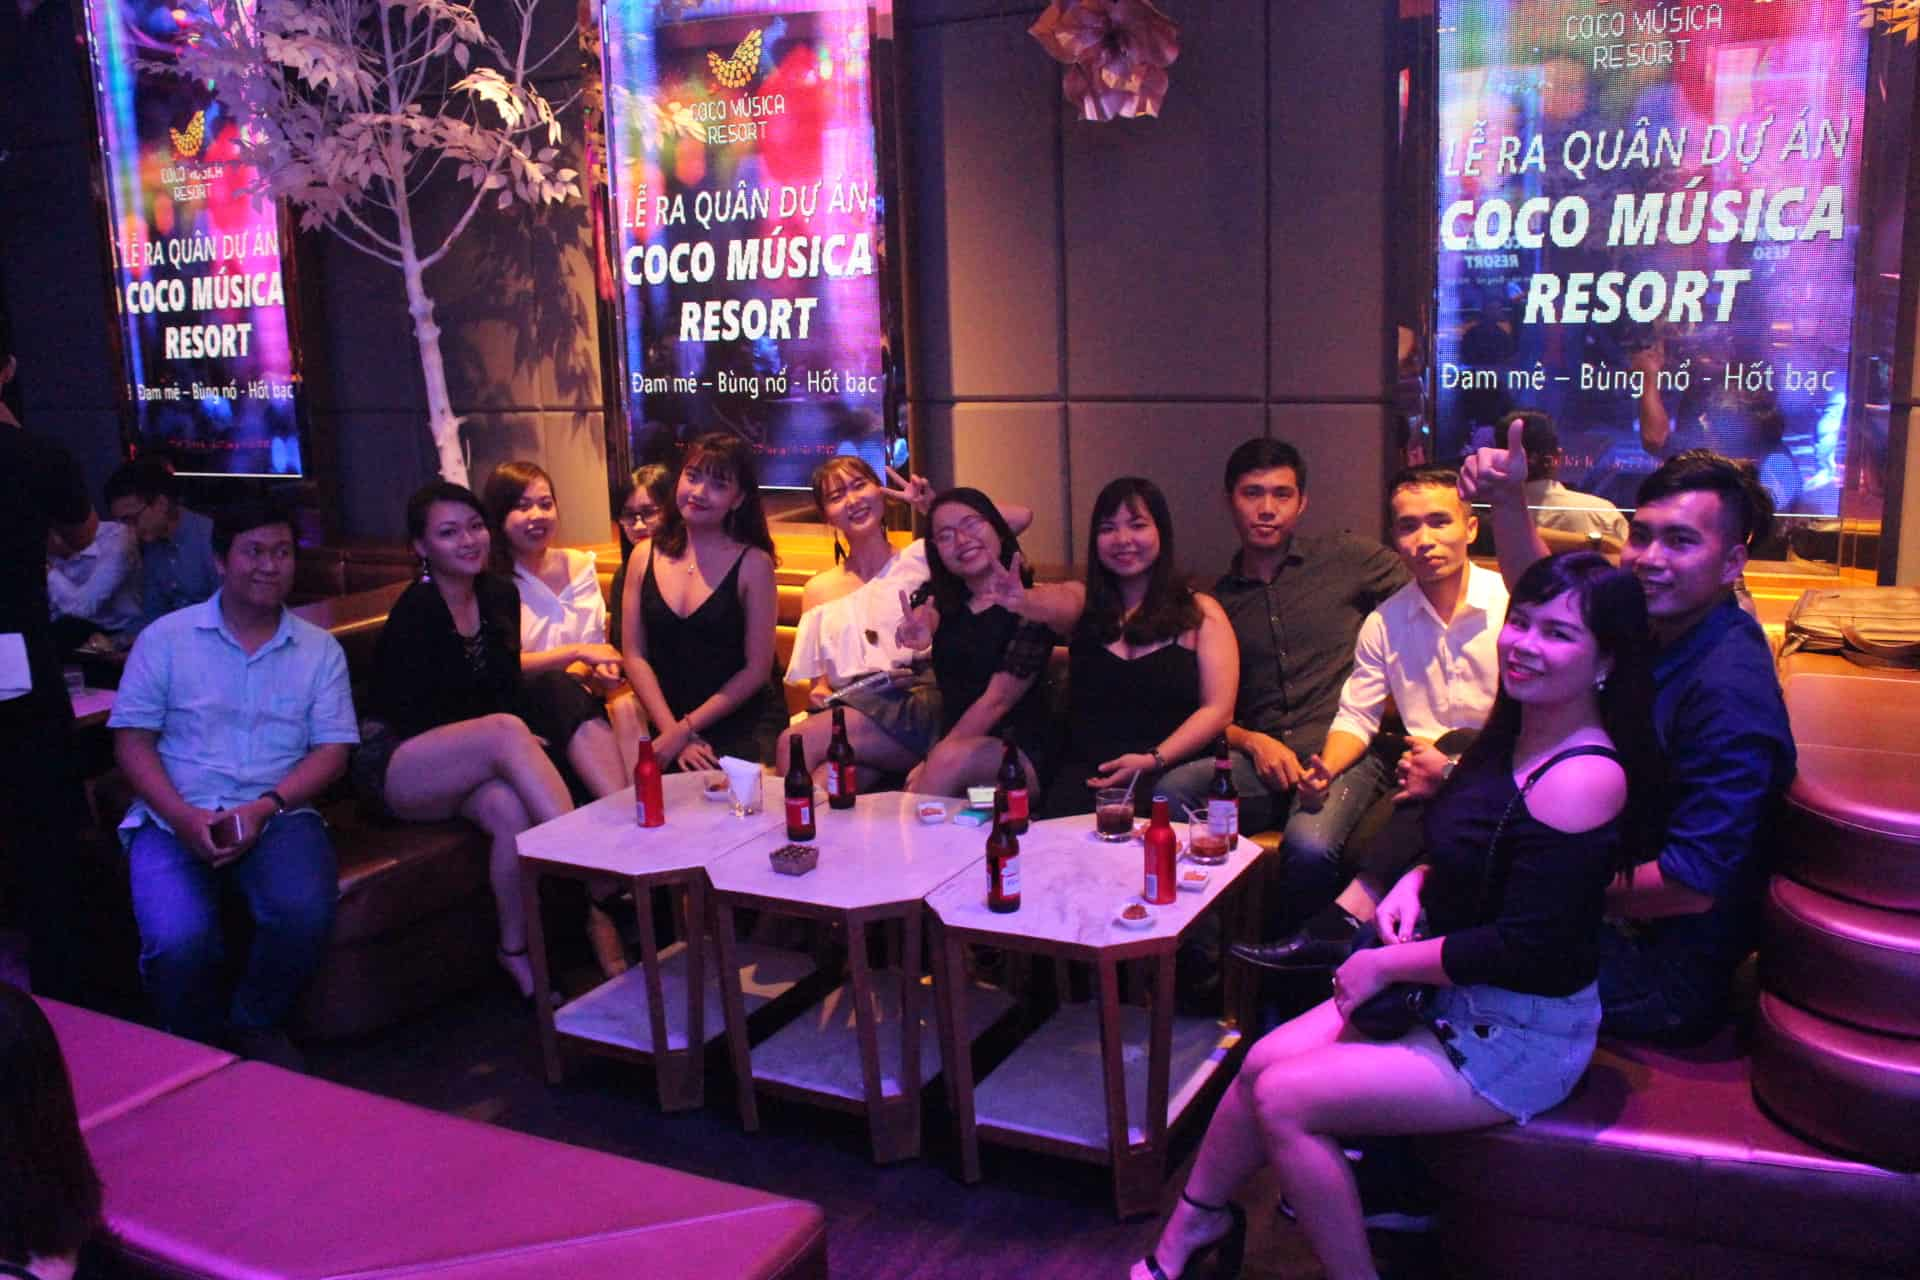 smartrealtors and partners tham gia le ra mat du an coco musica resort quay that sung – bung suc ban – don tet ung dung 7